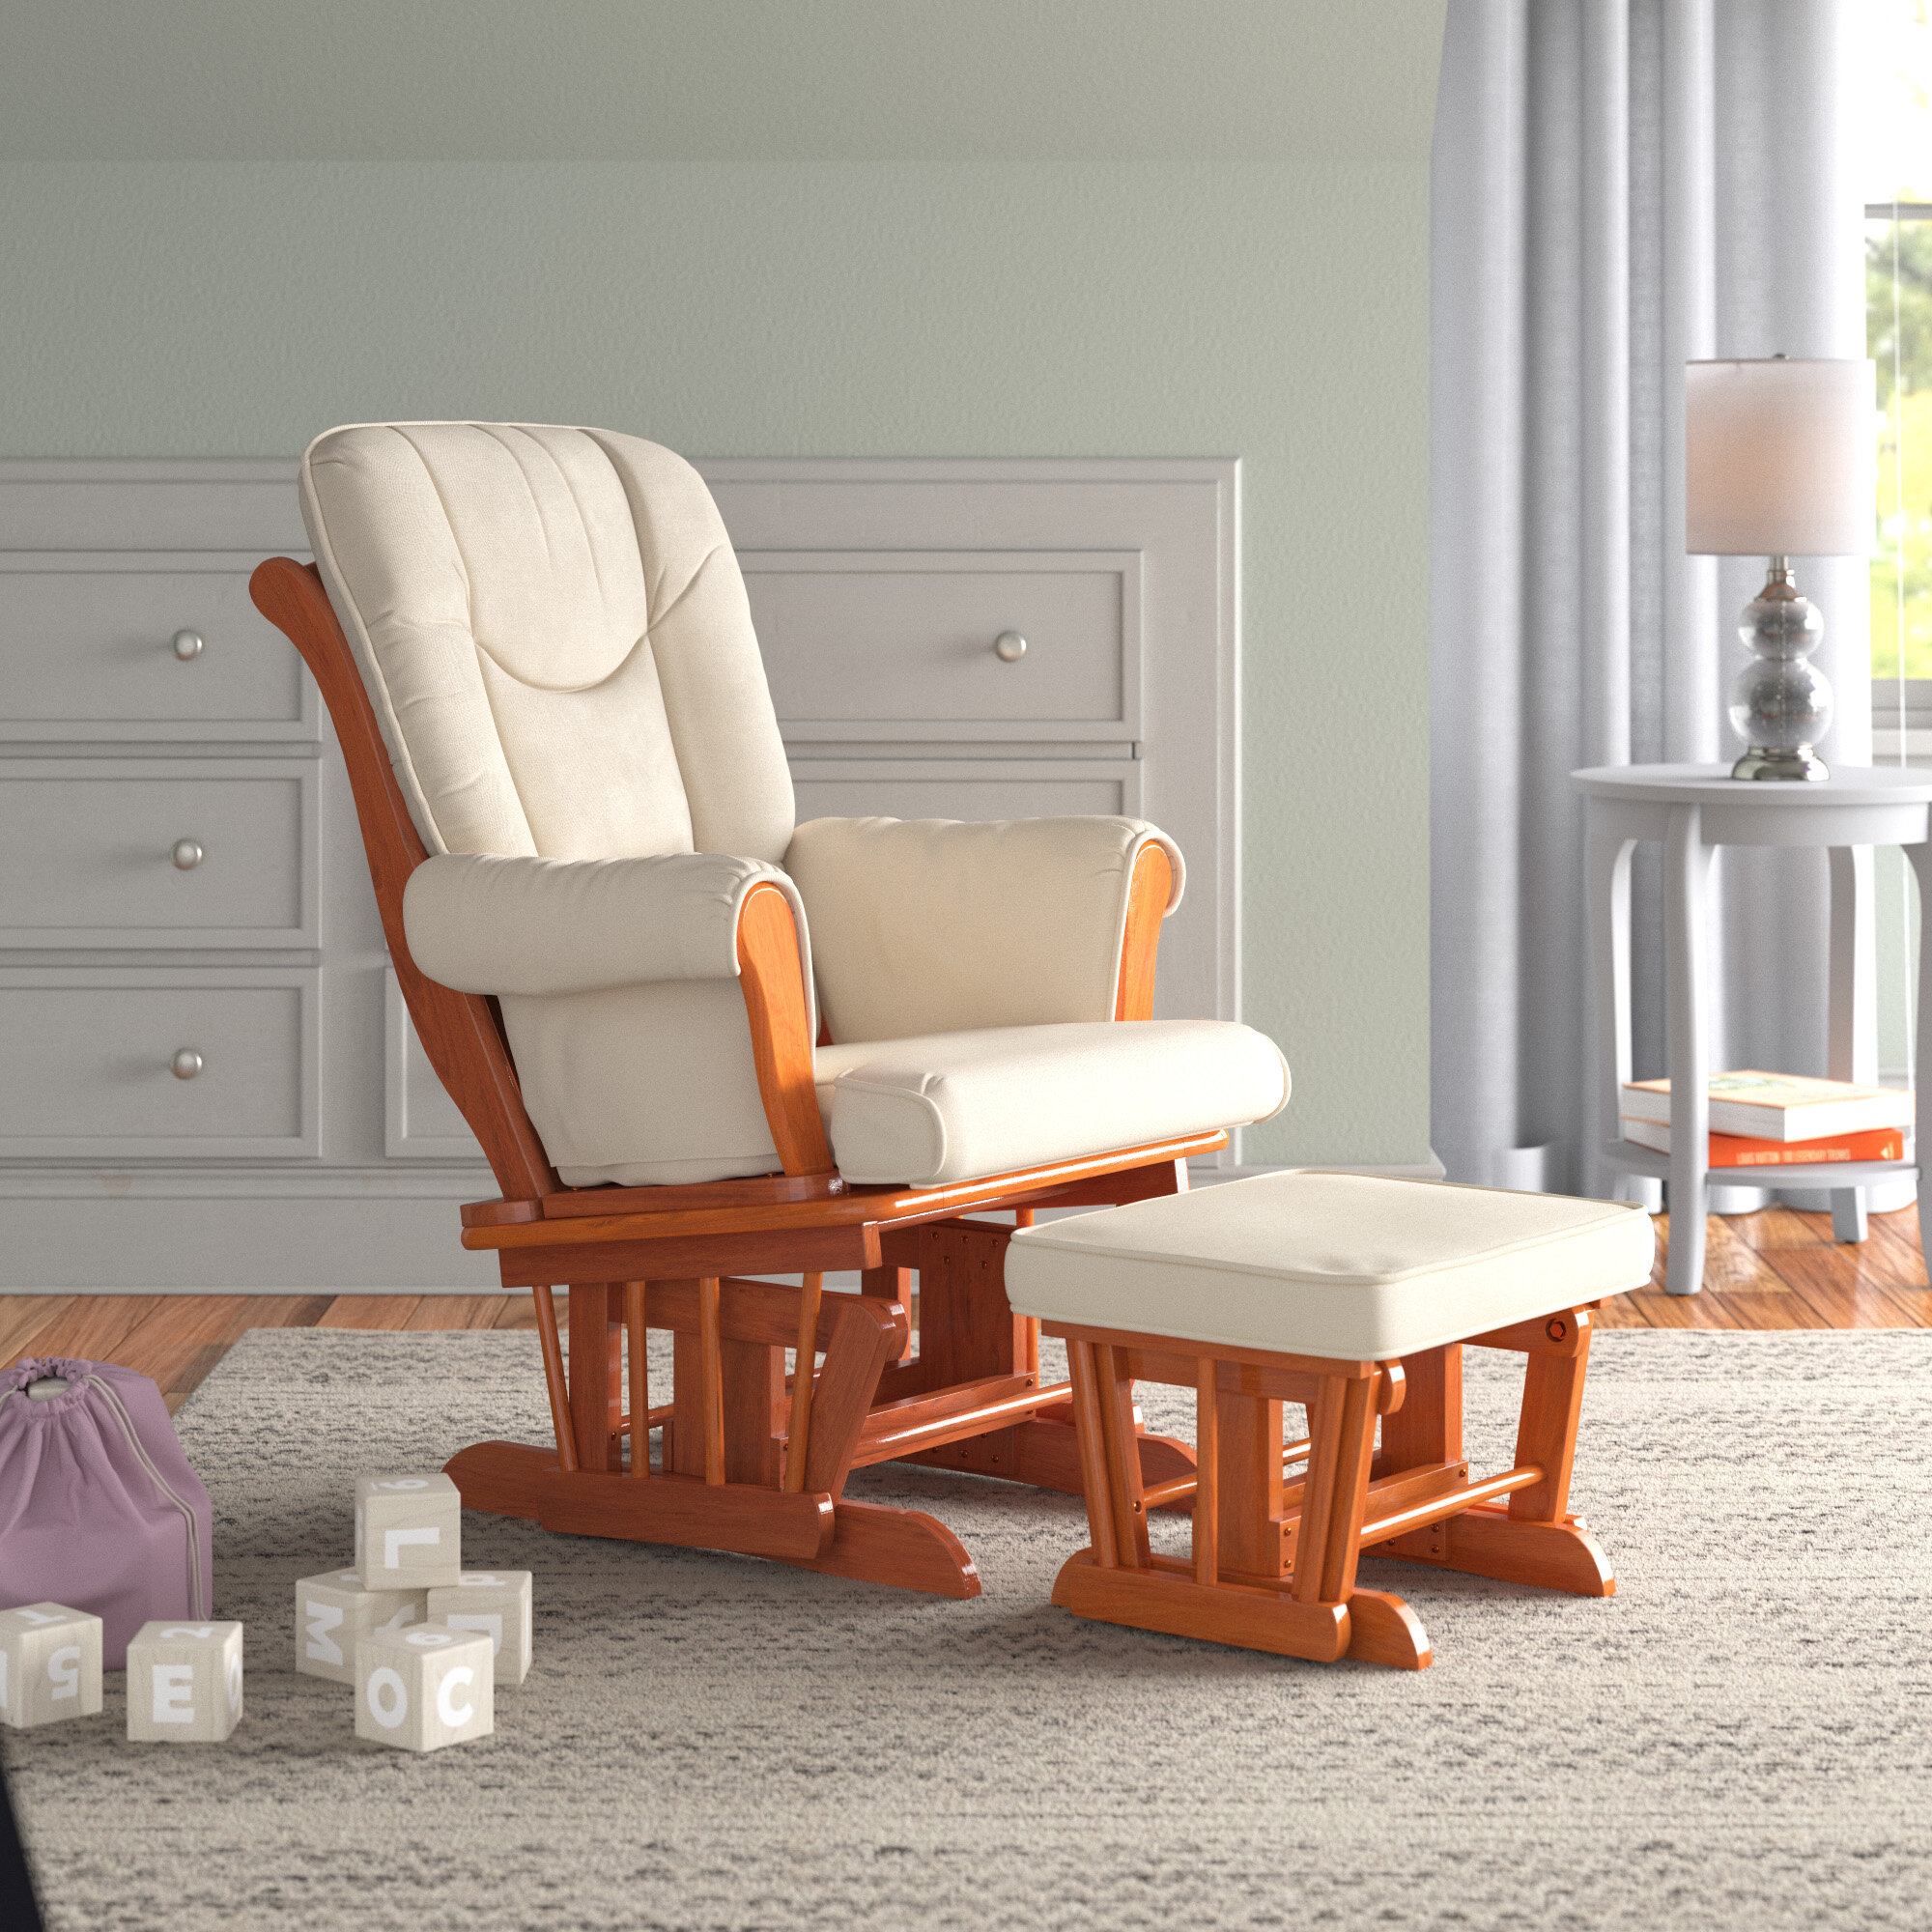 Picture of: Chair Ottoman Sets Nursery Gliders Rockers Recliners You Ll Love In 2020 Wayfair